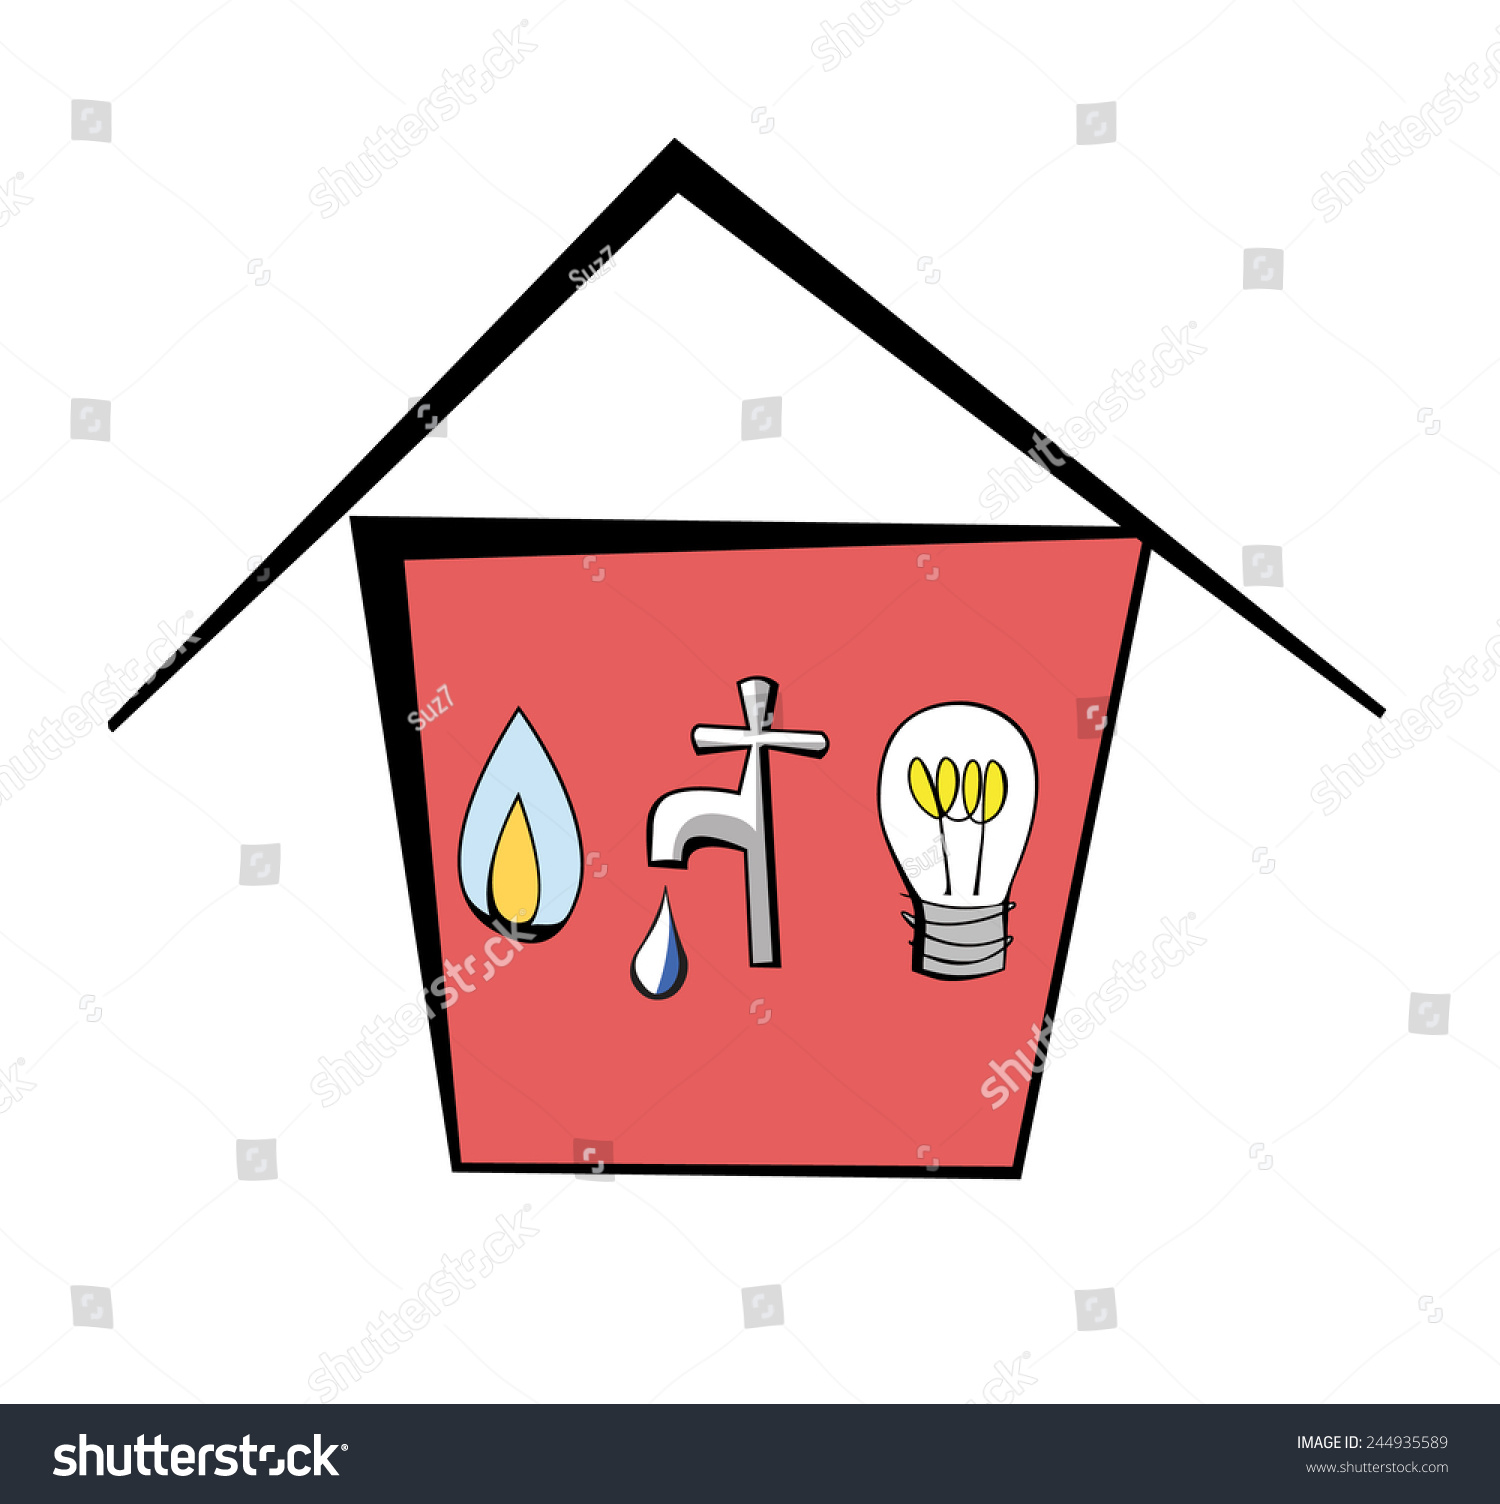 Cartoon Electricity Symbols Free Download Alternatingcurrentdiagram Alternating Current Vs House Containing Gas Water Stock